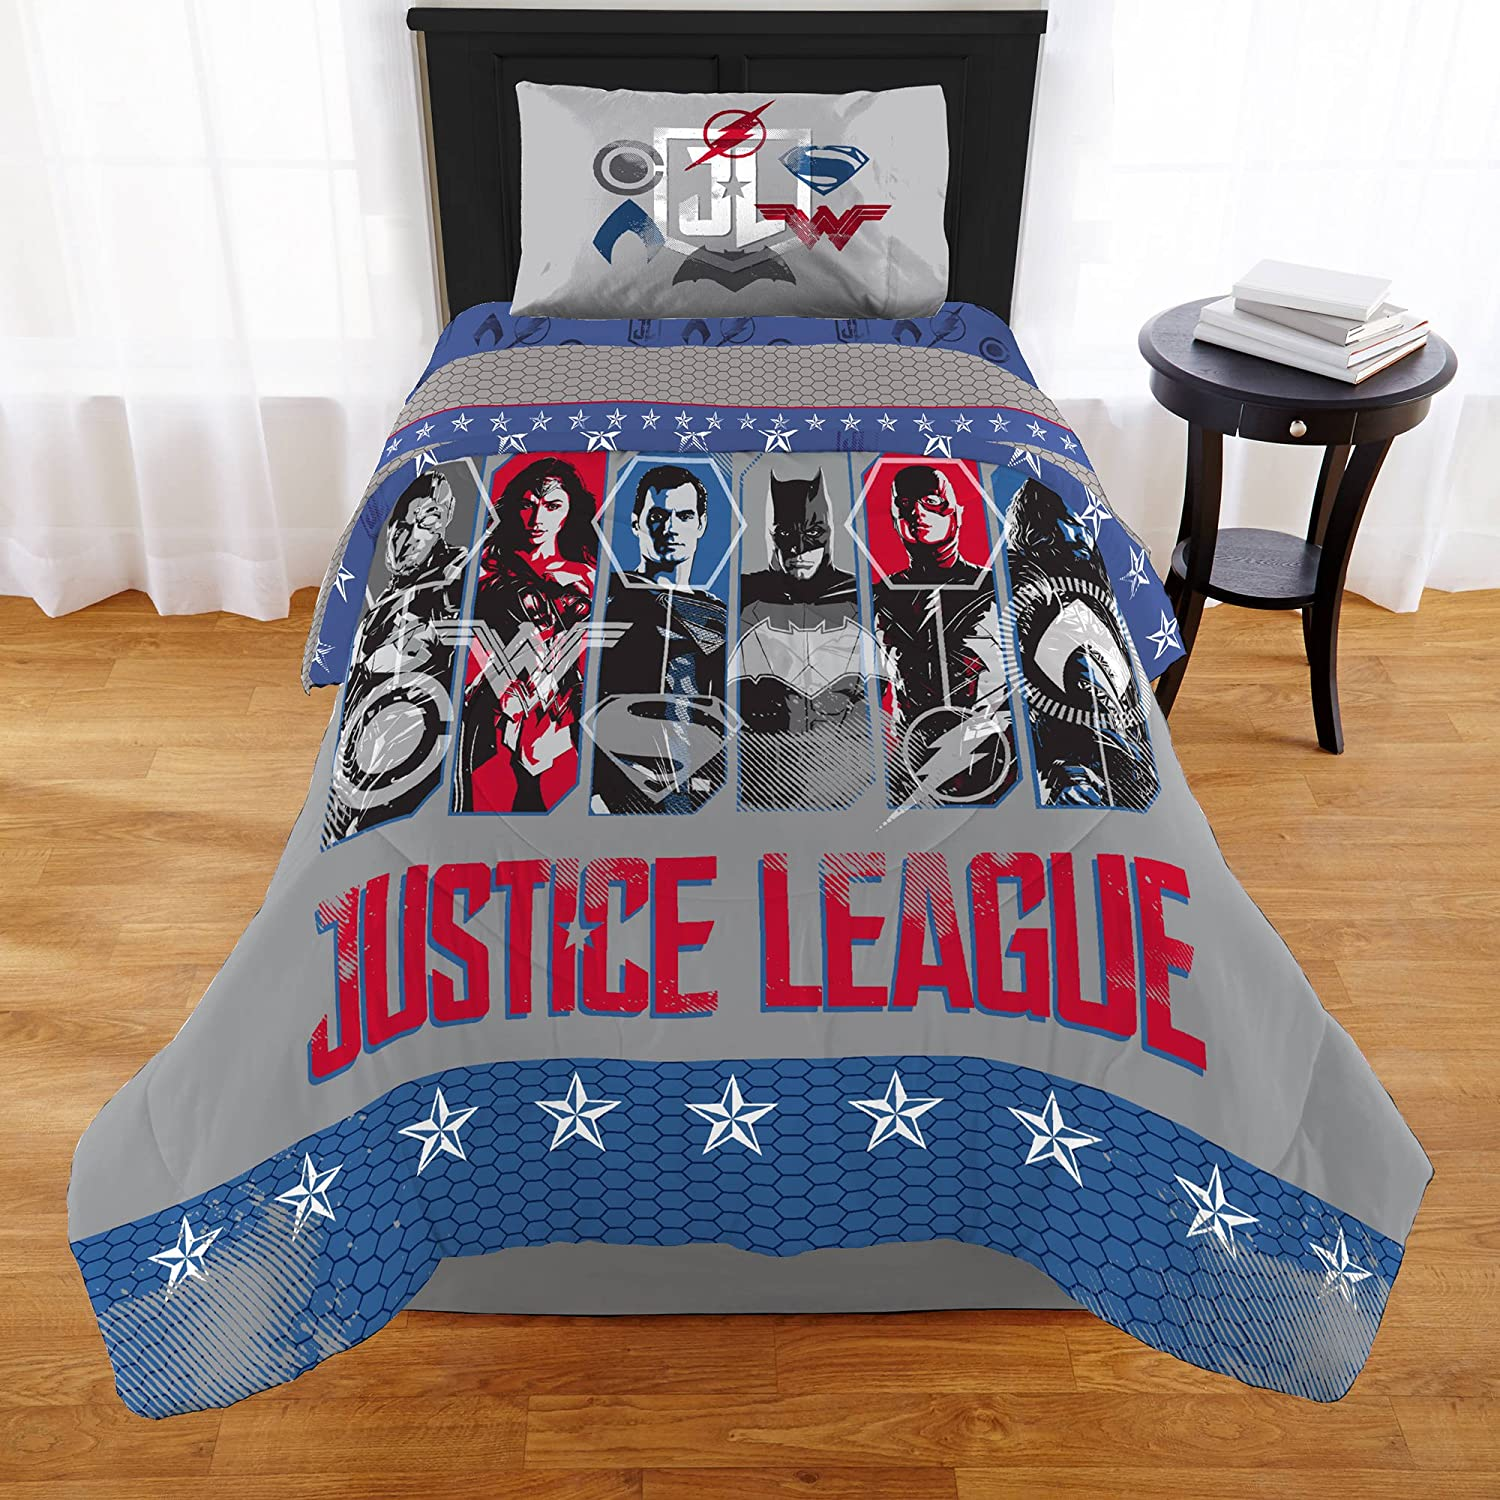 Justice League Movie (2017) 6pc Full Comforter and Sheet Set Bedding Collection